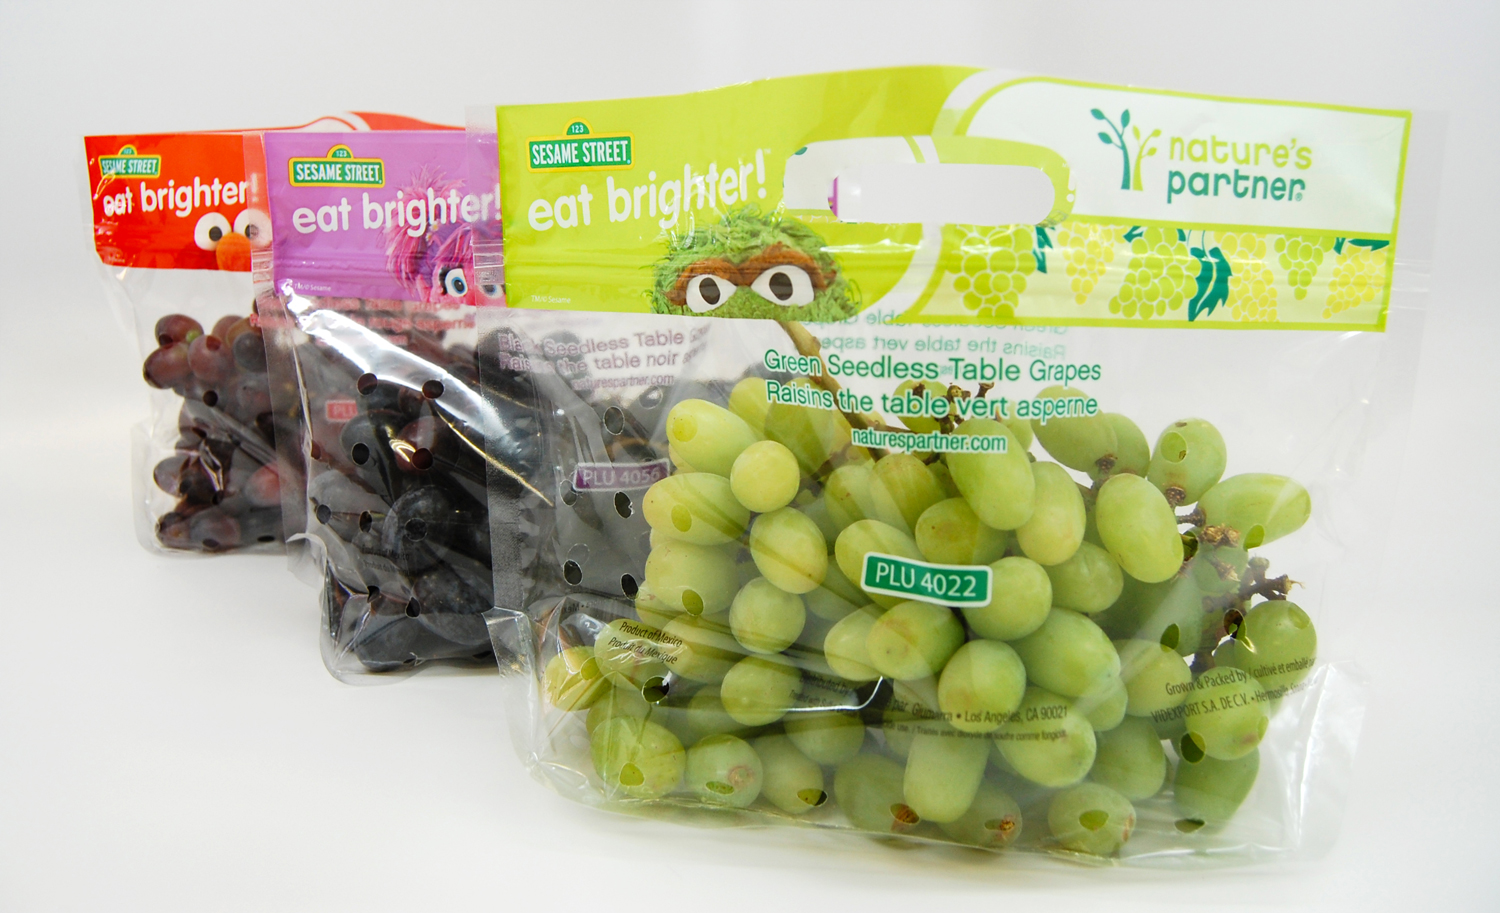 Nature's Partner grape bags  .     Click here to download high resolution image.